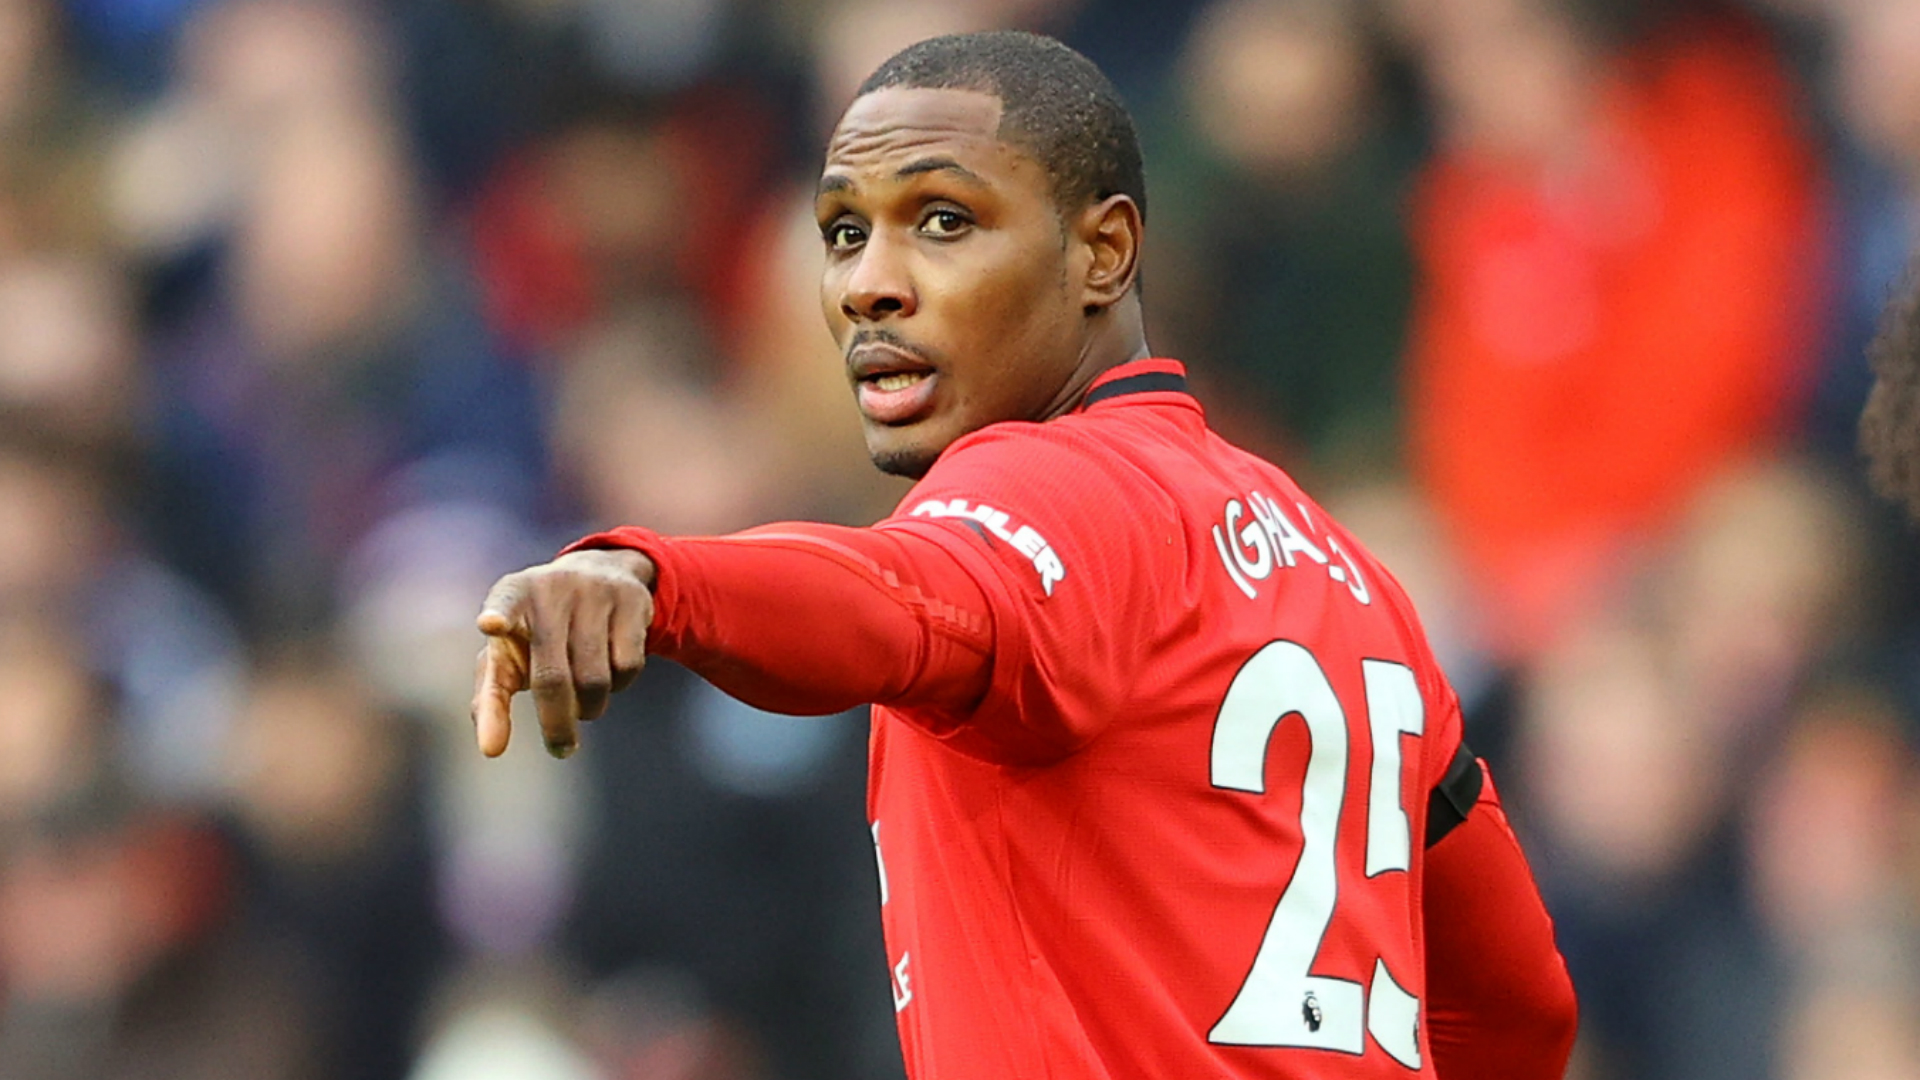 Ighalo: I'll give my blood for Man Utd